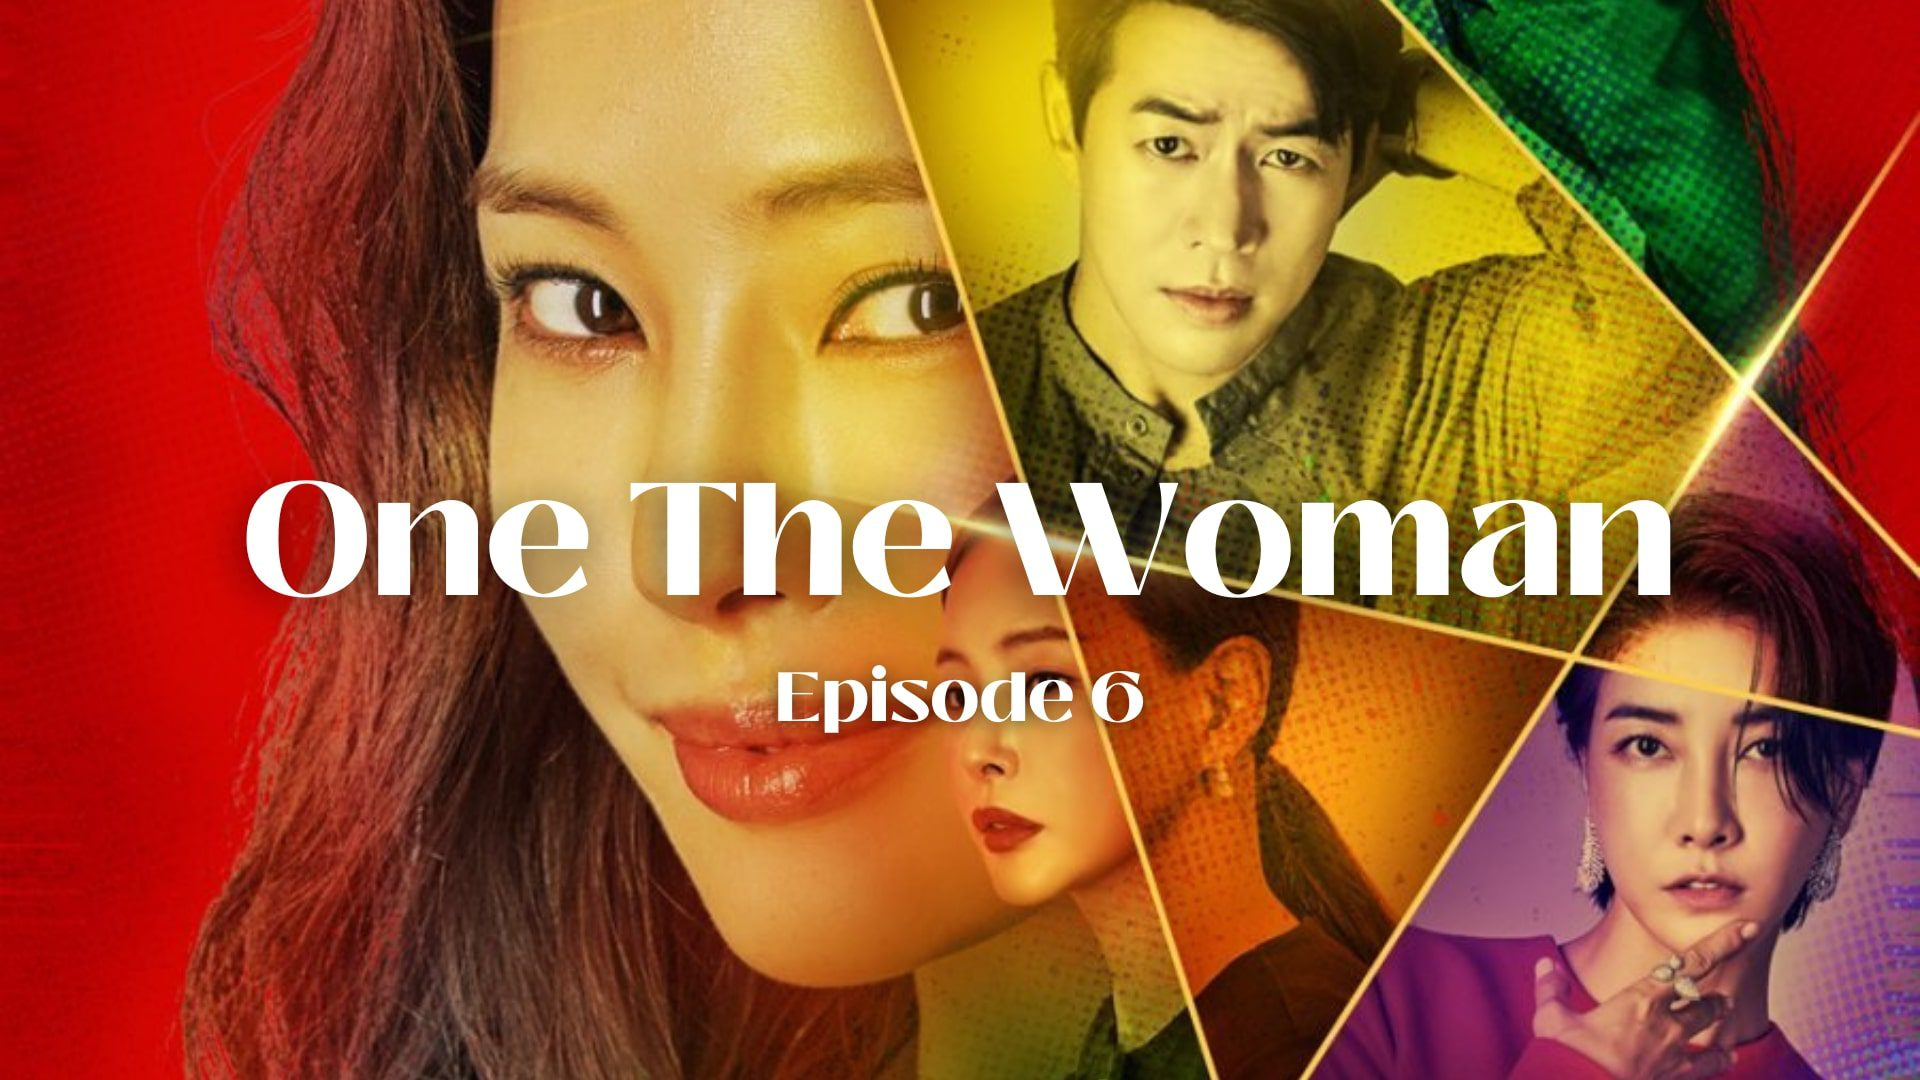 One The Woman Episode 6